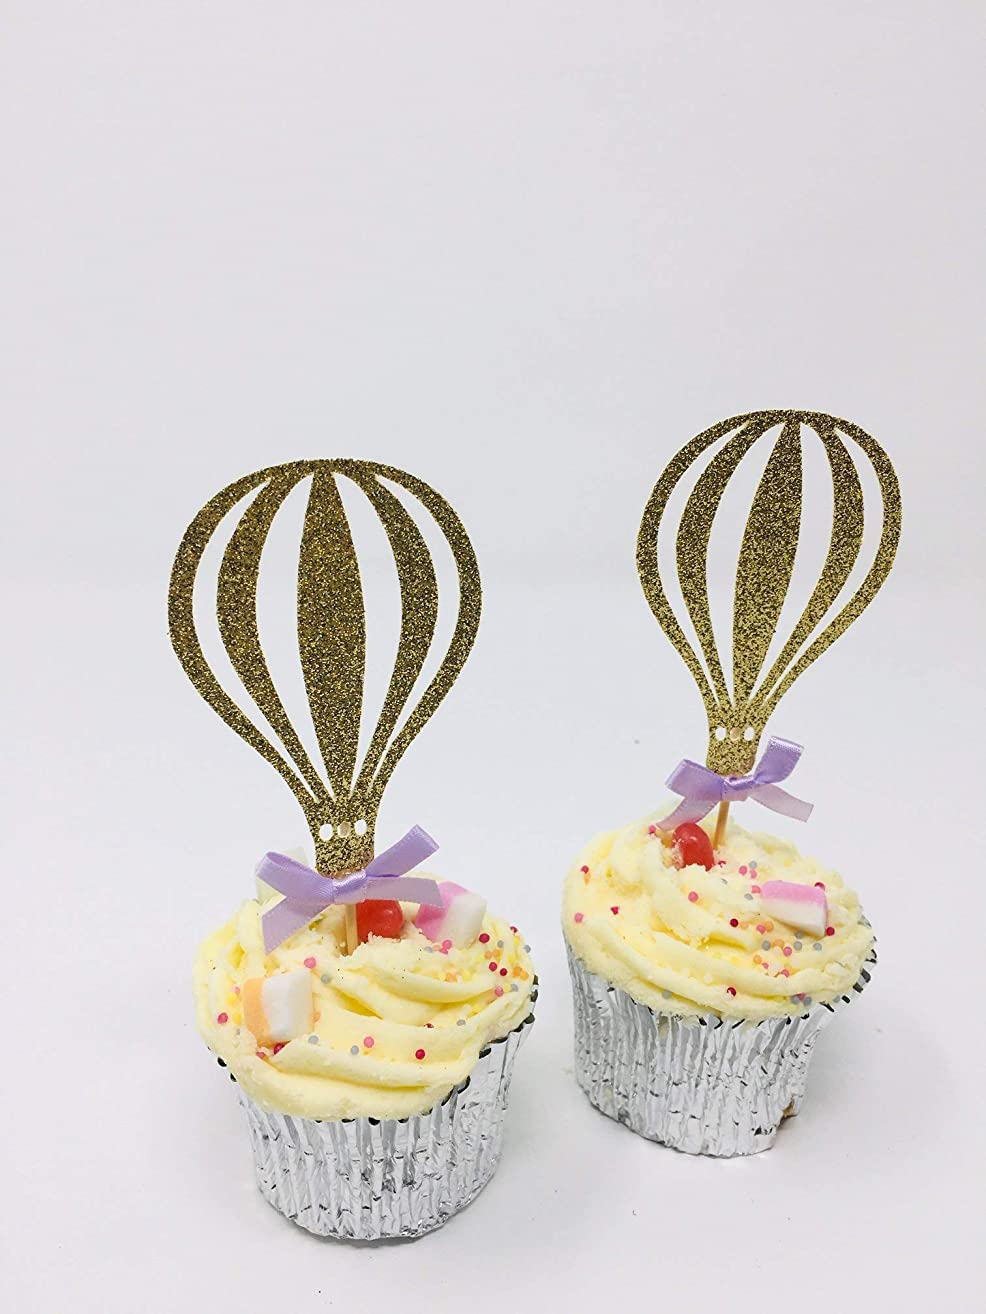 Hot air ballon cupcake topper with the bow. 12 pieces. Birthday party decor. First birthday decorations.